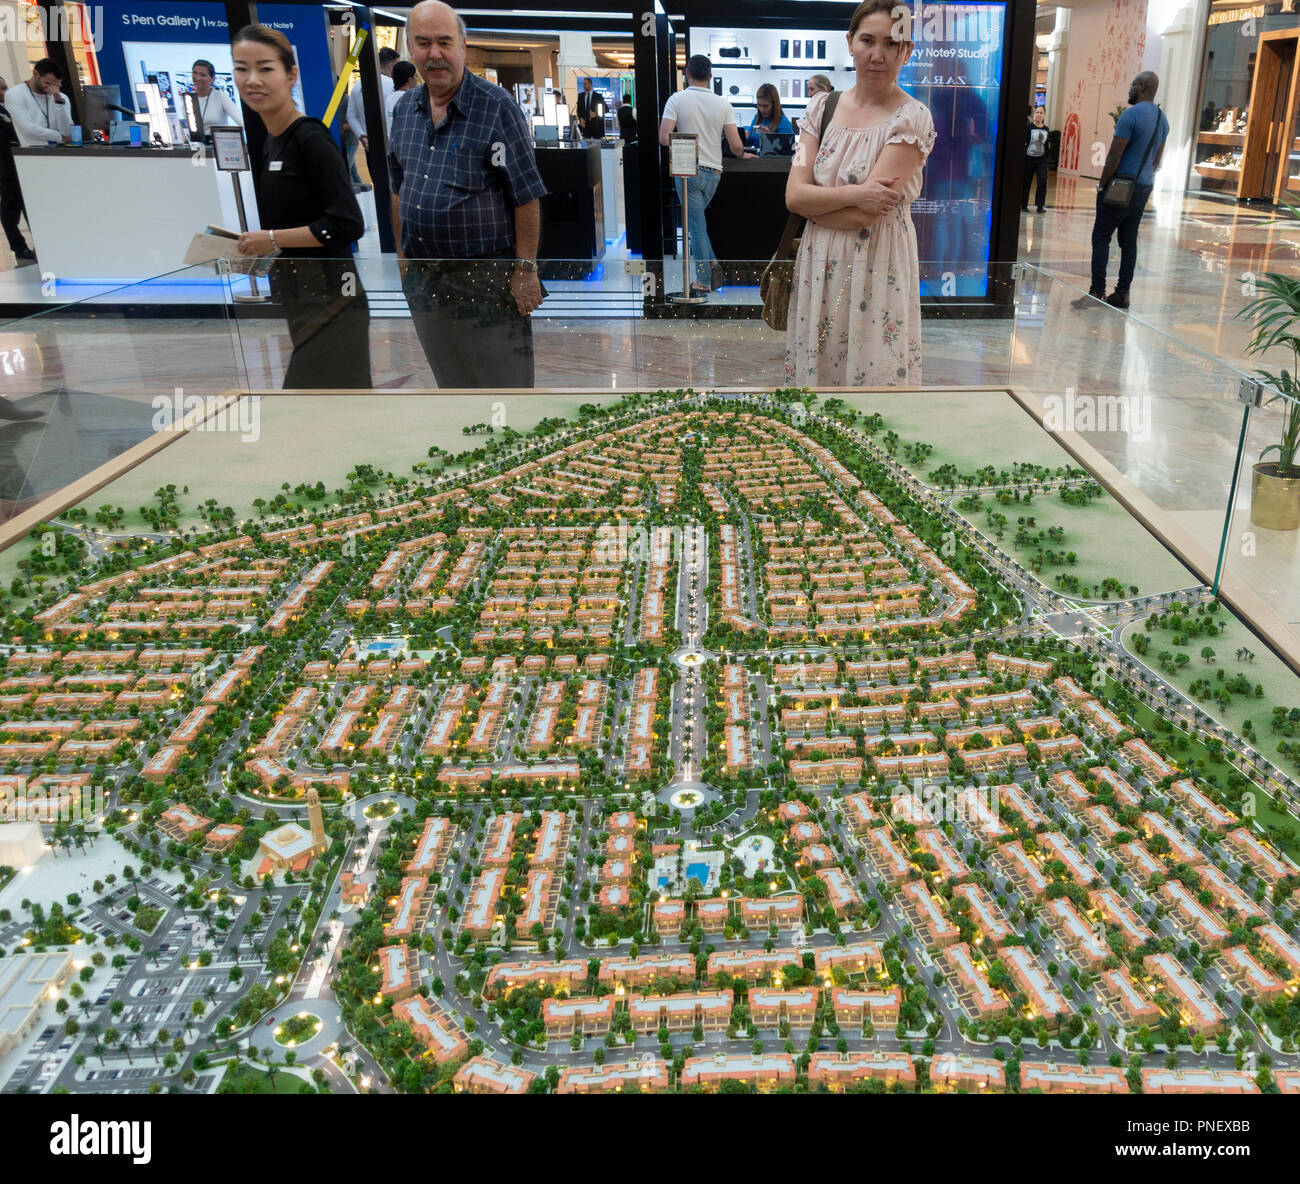 Model of proposed new property development with many villas called Serena in Dubai, UAE Stock Photo